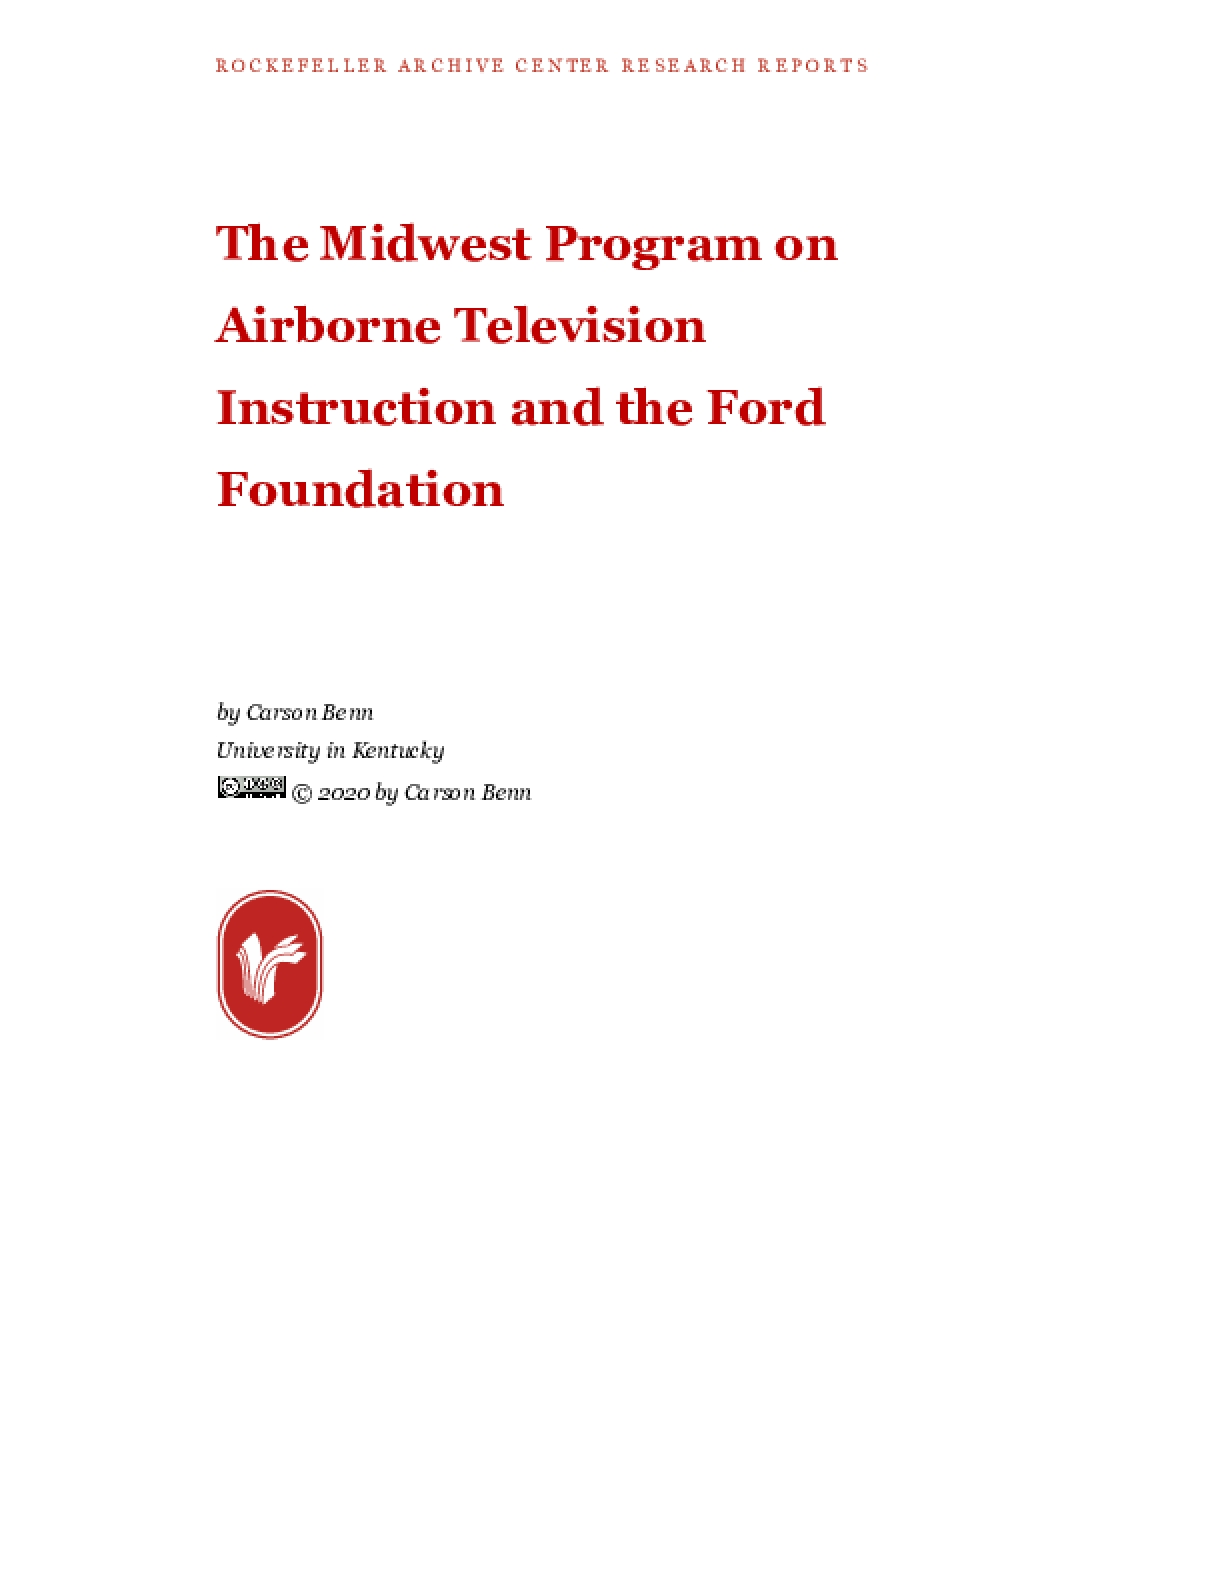 The Midwest Program on Airborne Television Instruction and the Ford Foundation